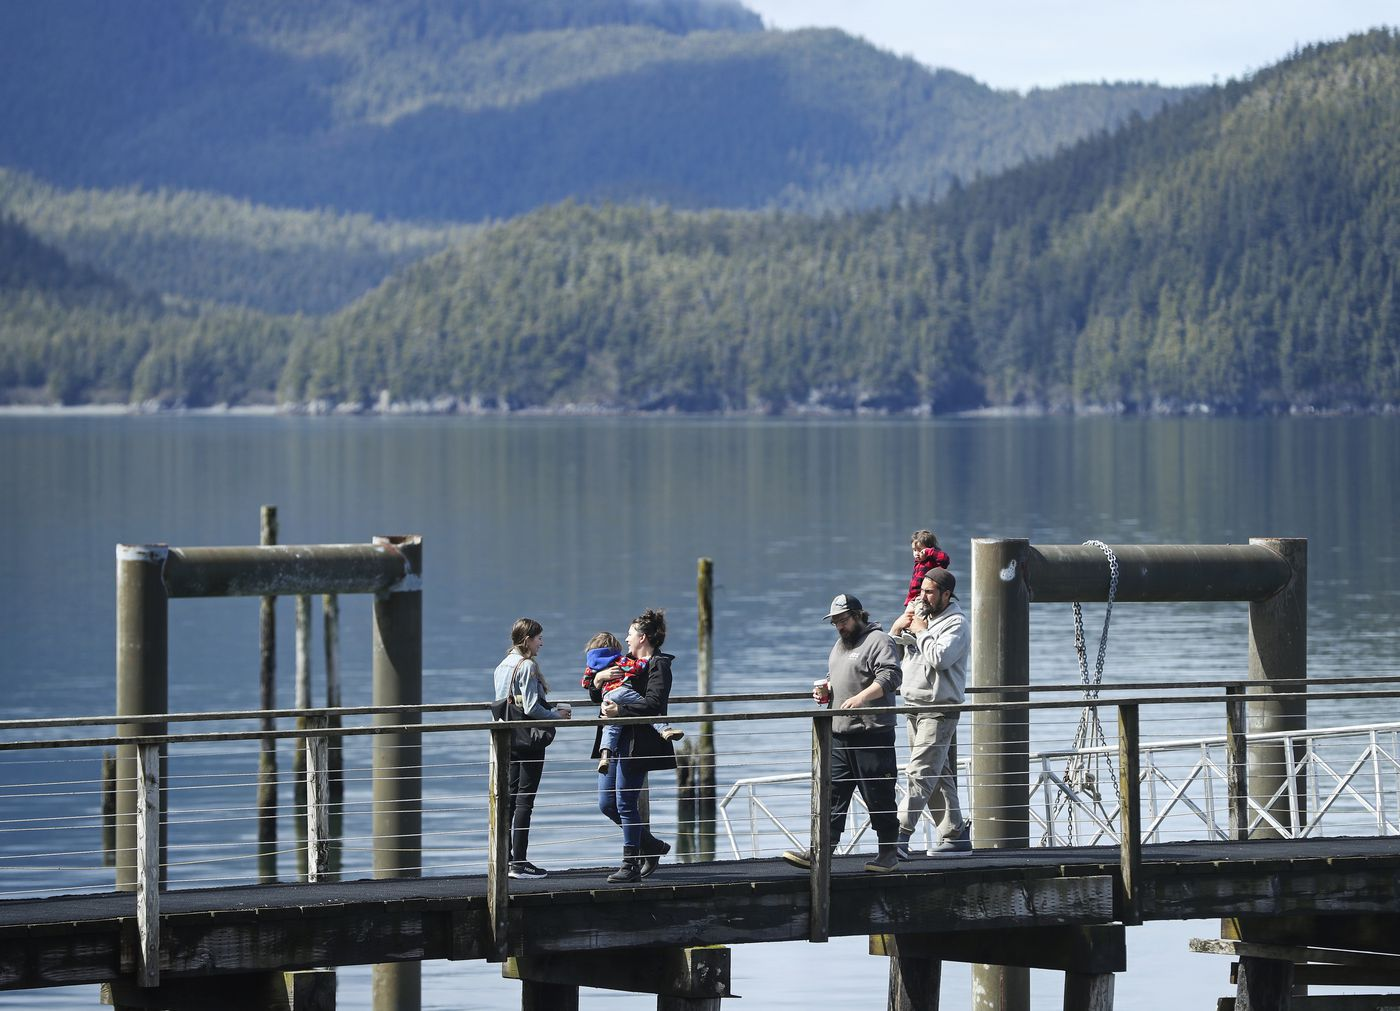 People walk back to shore after looking at Orca Inlet from a dock at the end of Orca Road in Cordova on Saturday, May 22, 2021. (Emily Mesner / ADN)